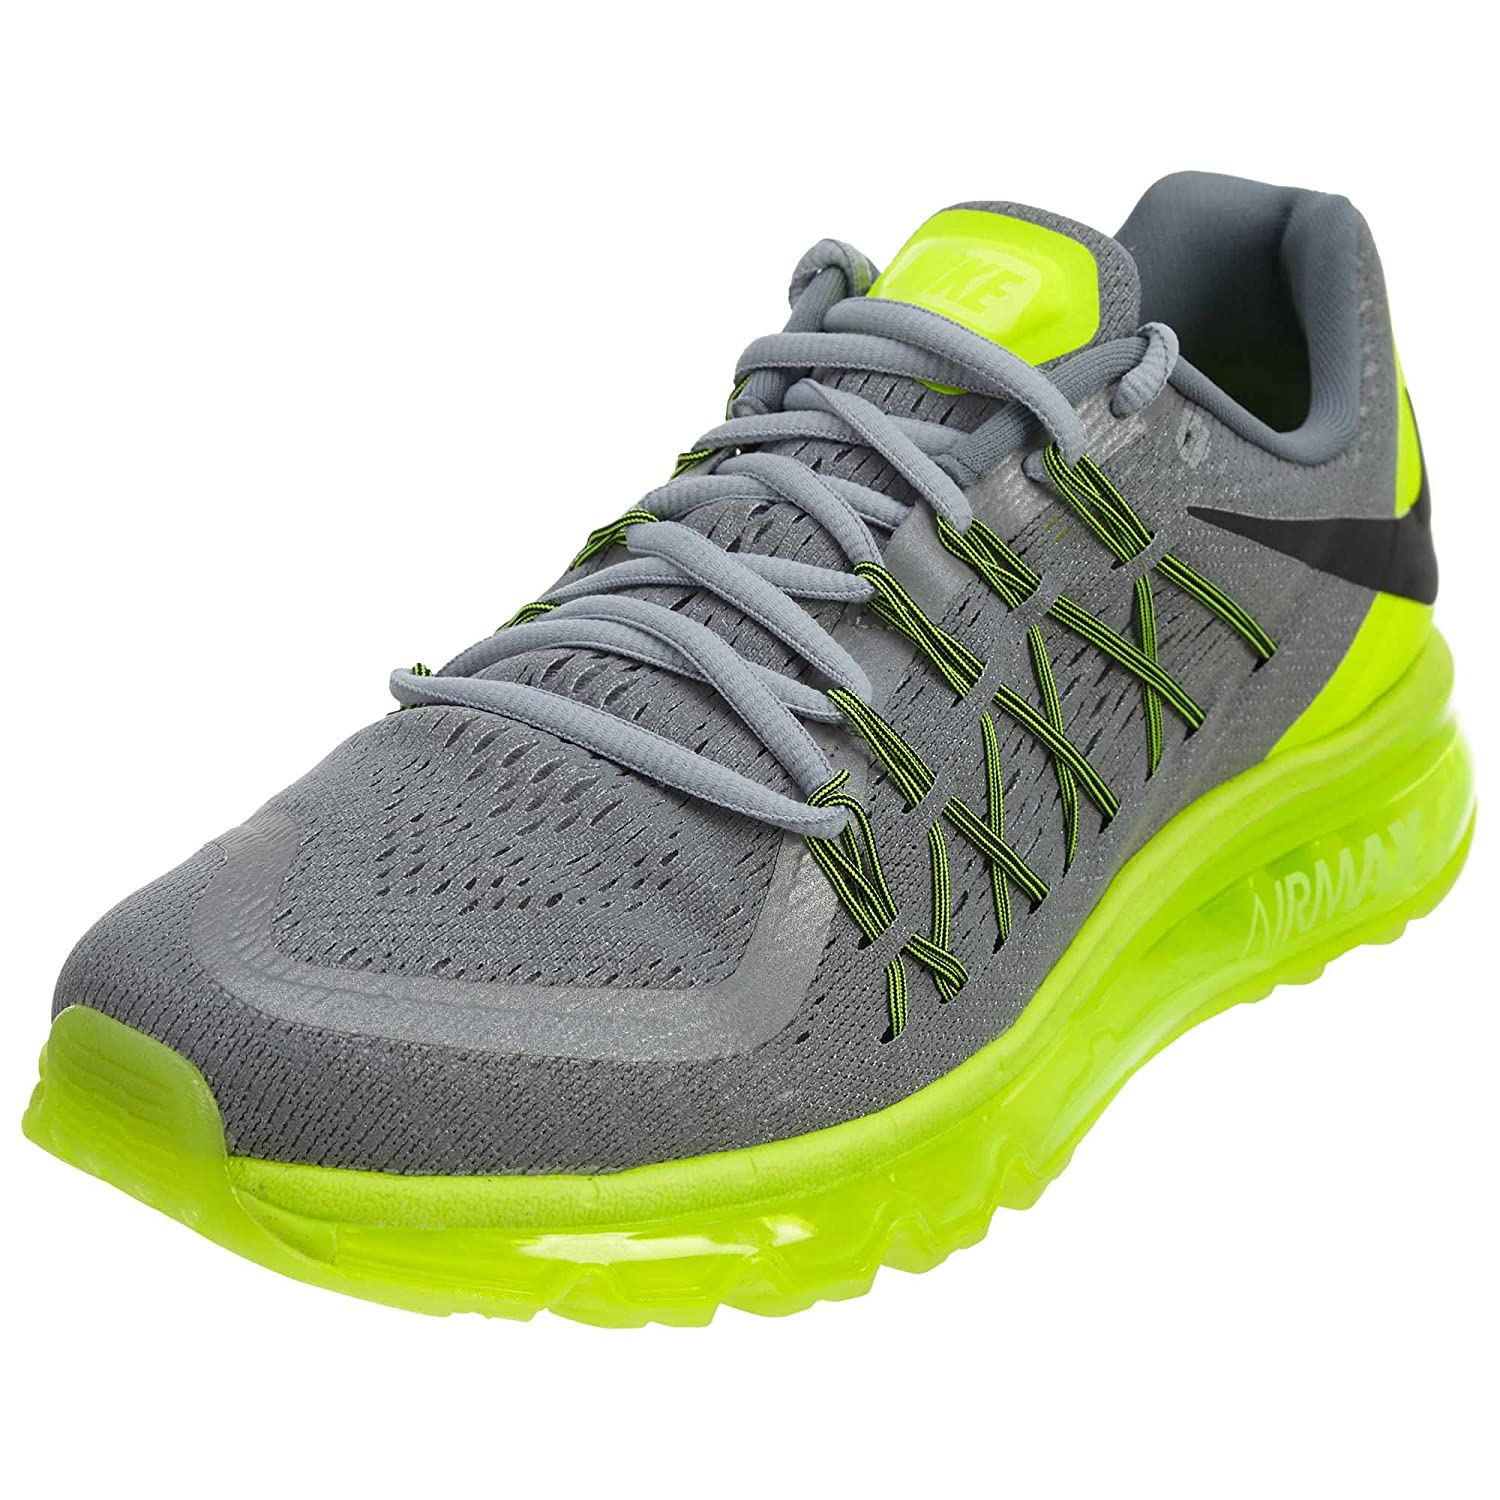 Nike Air Max 2015 Anniversary Pack Mens Running Trainers 724367 Sneakers Shoes